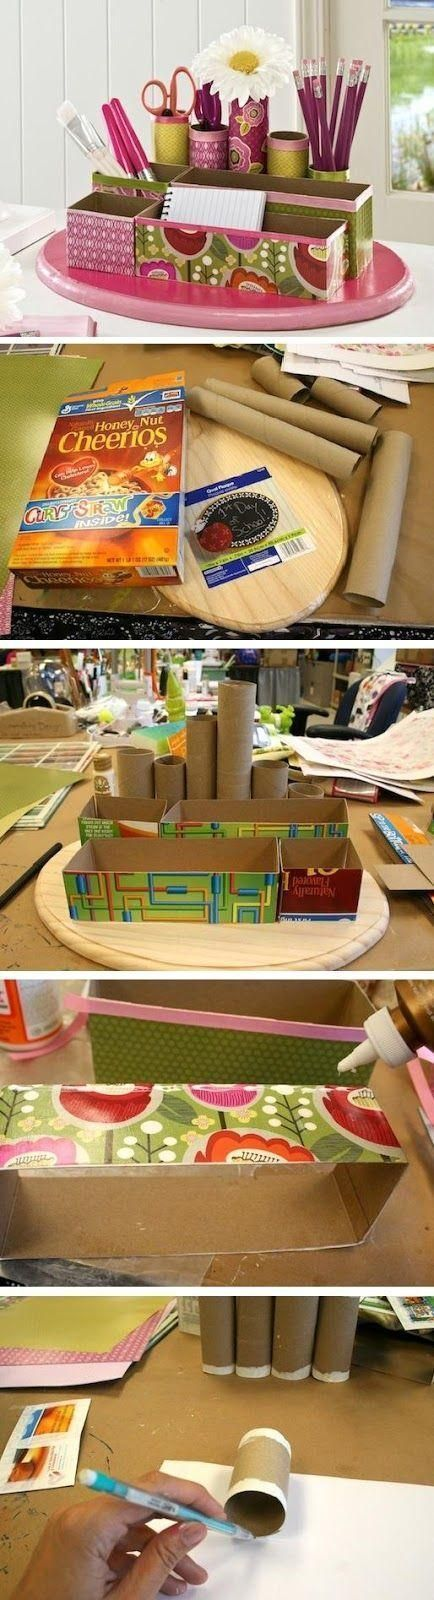 I Need To Make This. My Desk Is A Mess And Using Old Cereal Boxes And Toilet Rolls Are A Great Idea!